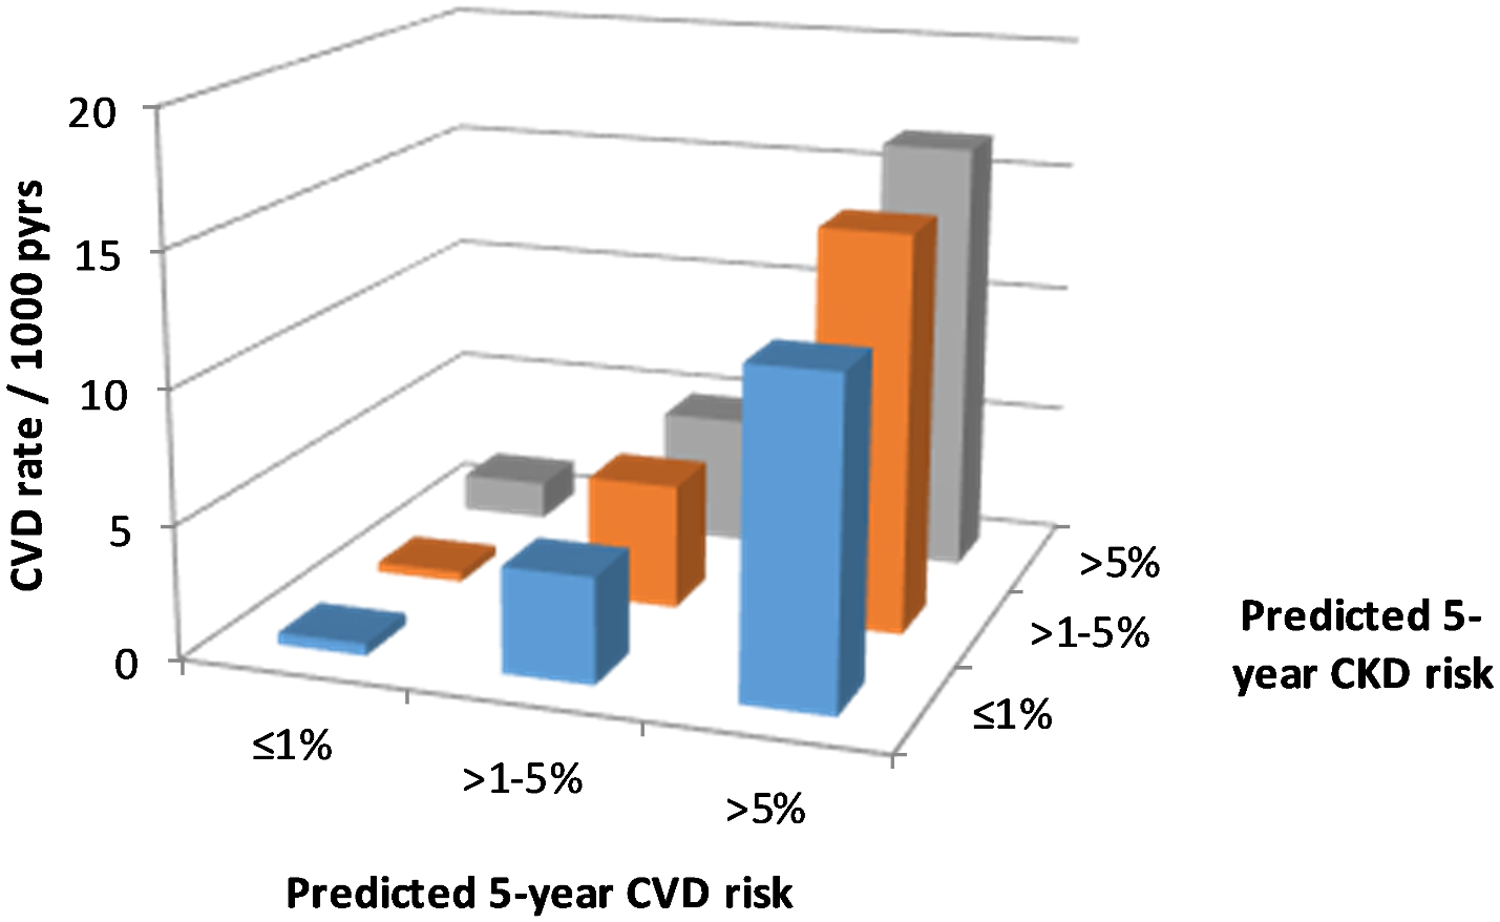 CVD event rates according to CKD and CVD risk.